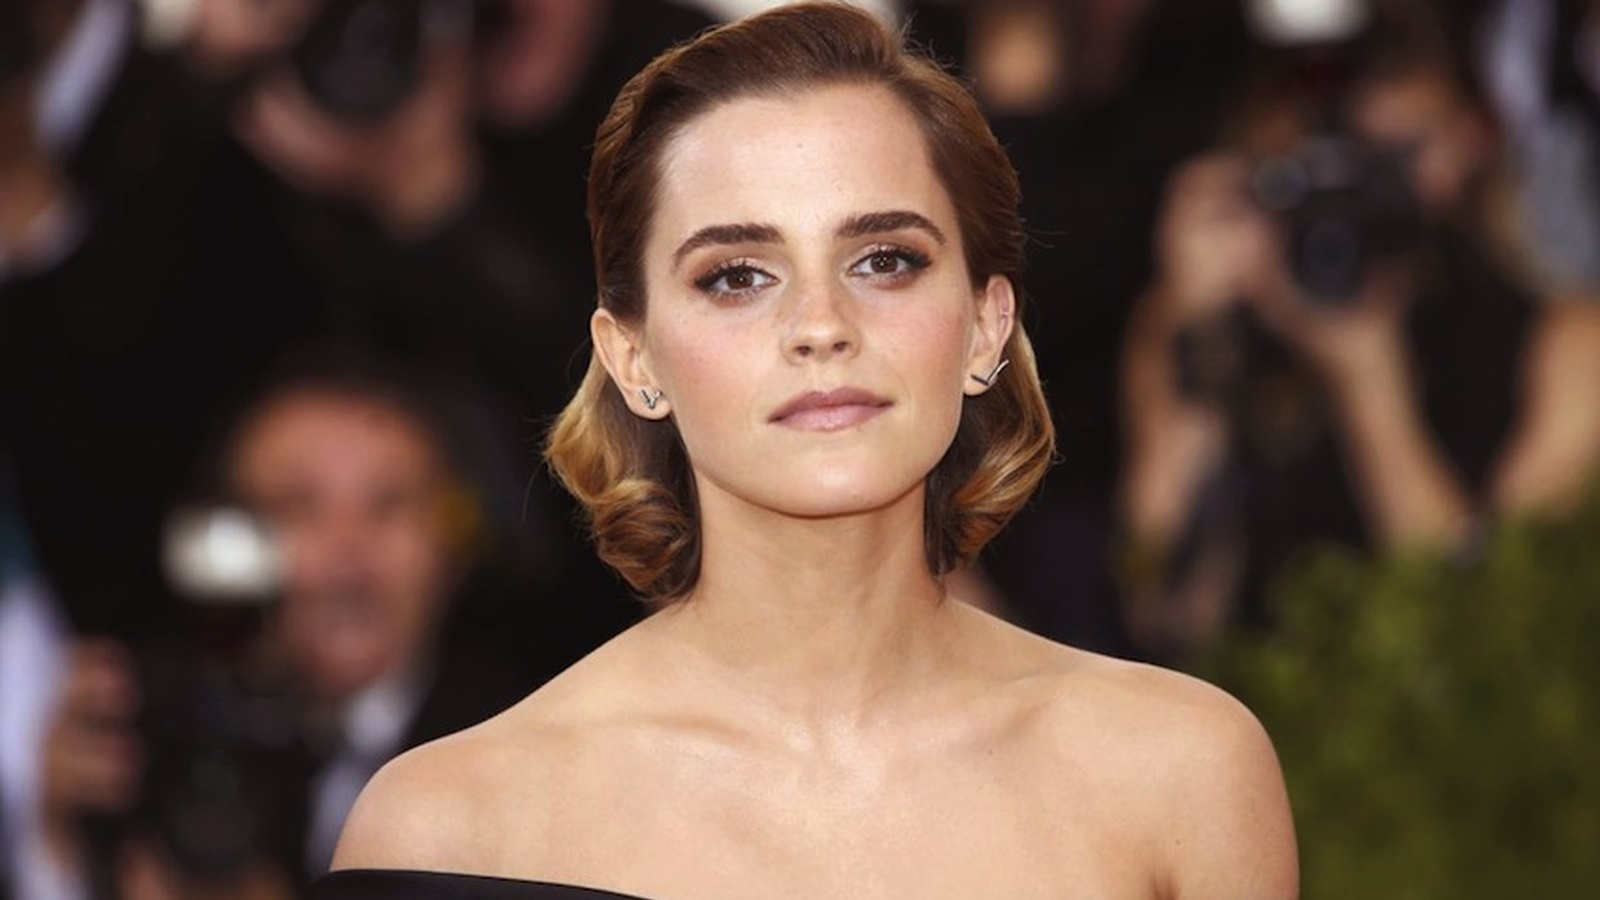 Emma Watson's Met Gala Dress Was Made Out Of Plastic Bottles